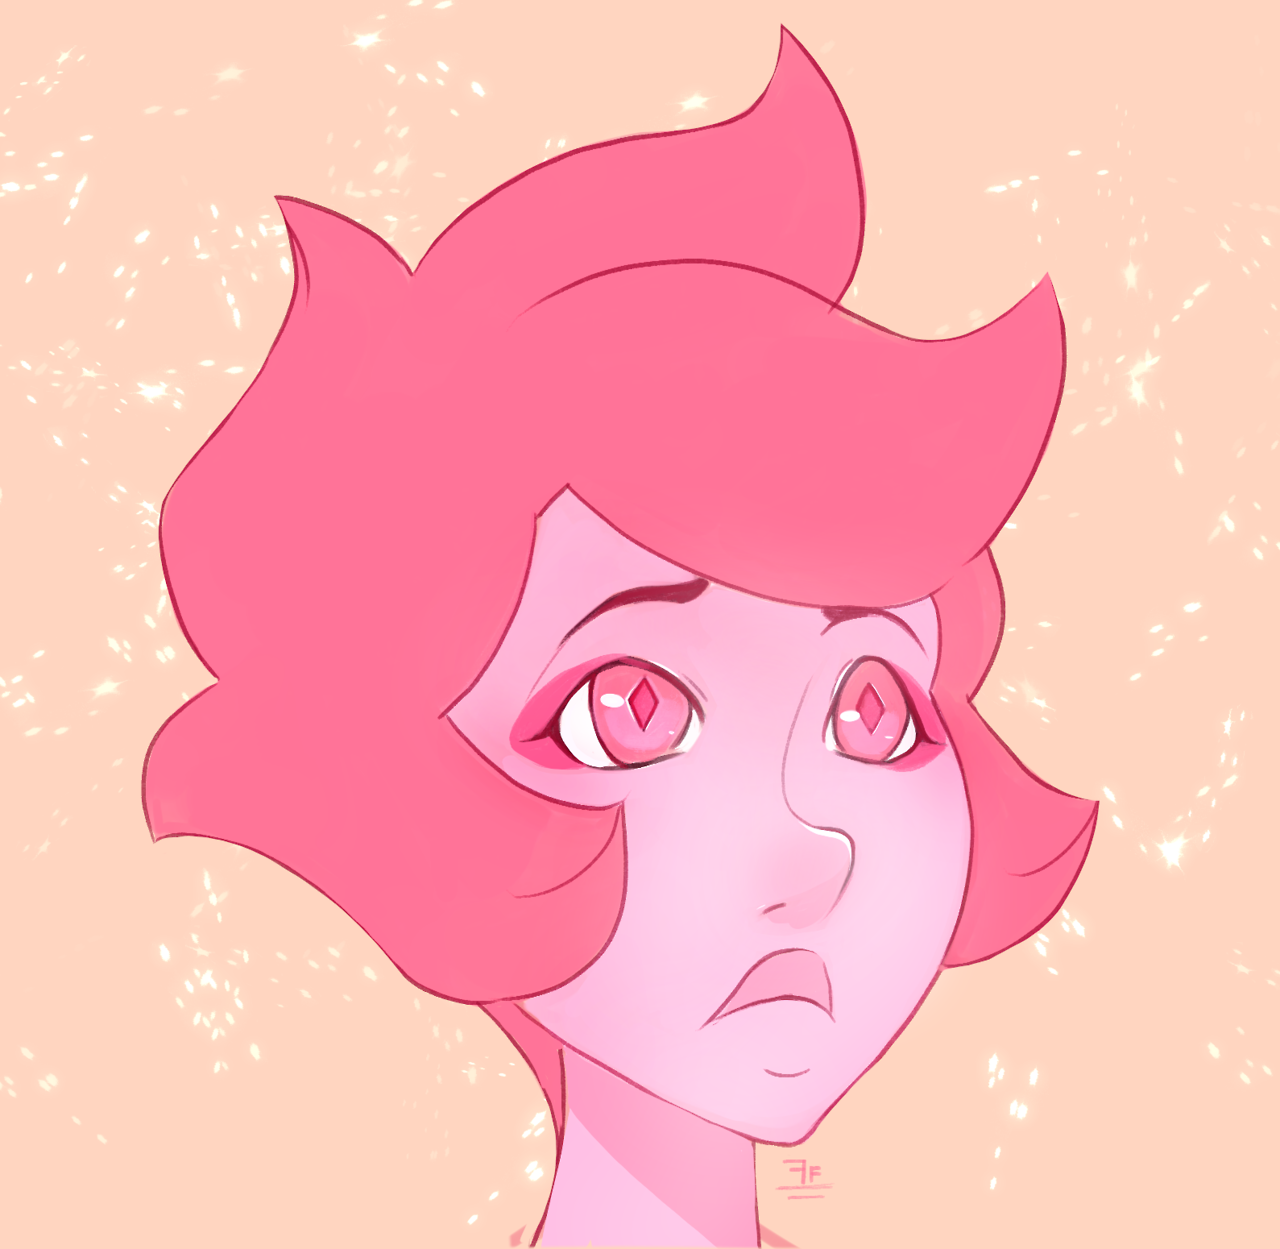 Thought i posted this here. Have some Pink Diamond concepts! I would draw her looking mature looking and decided to try drawing her more younger looking. Seeing as i see her as the baby in the...